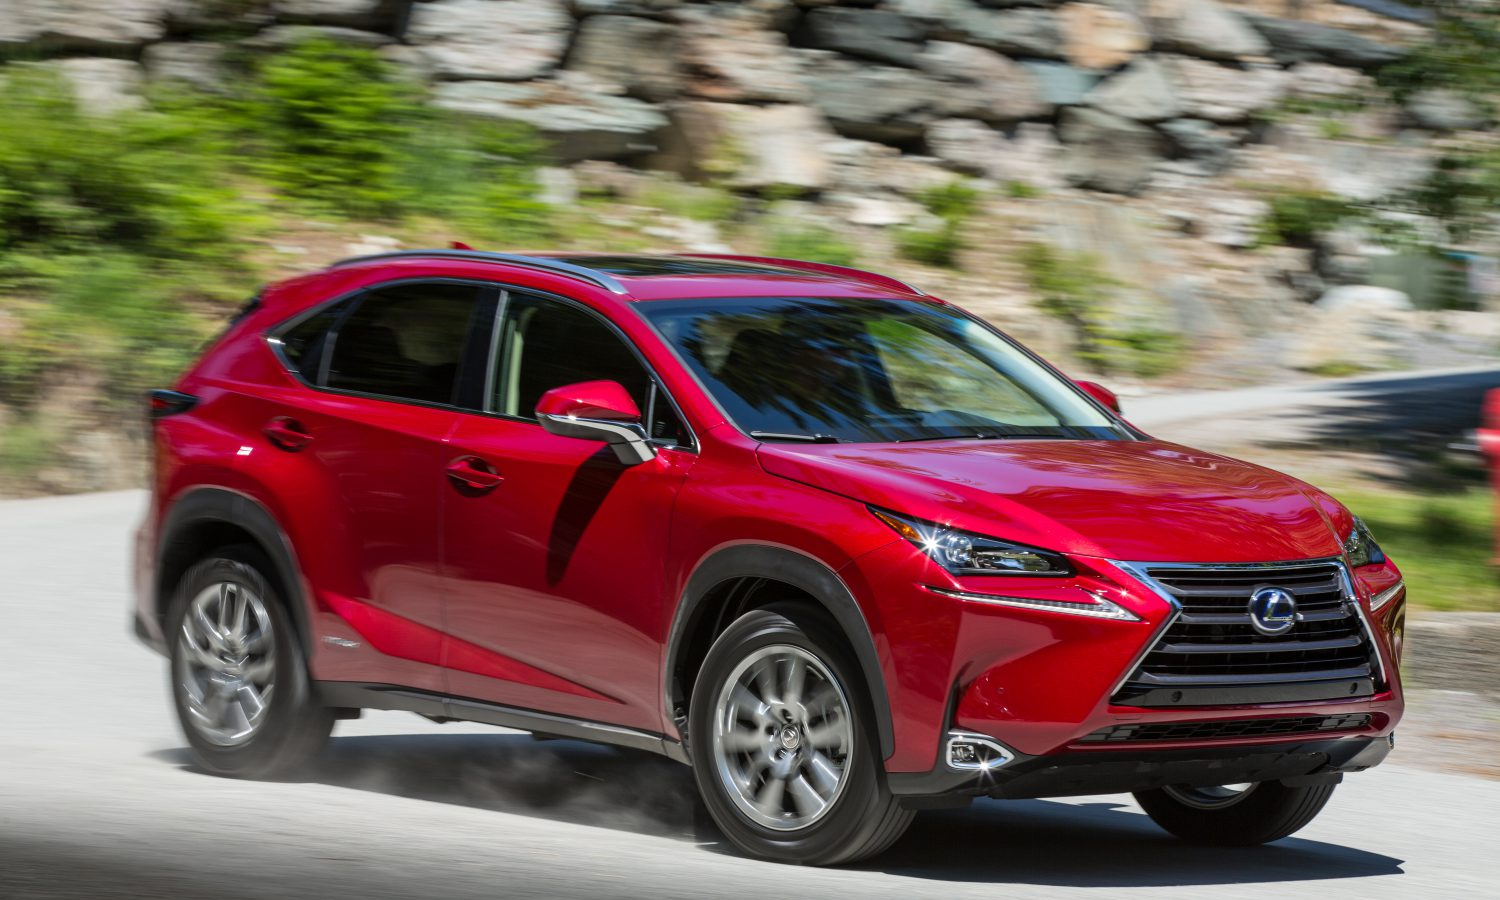 And Then There Were Six – Lexus NX 300h Compact Luxury Utility Vehicle Expands Hybrid Lineup